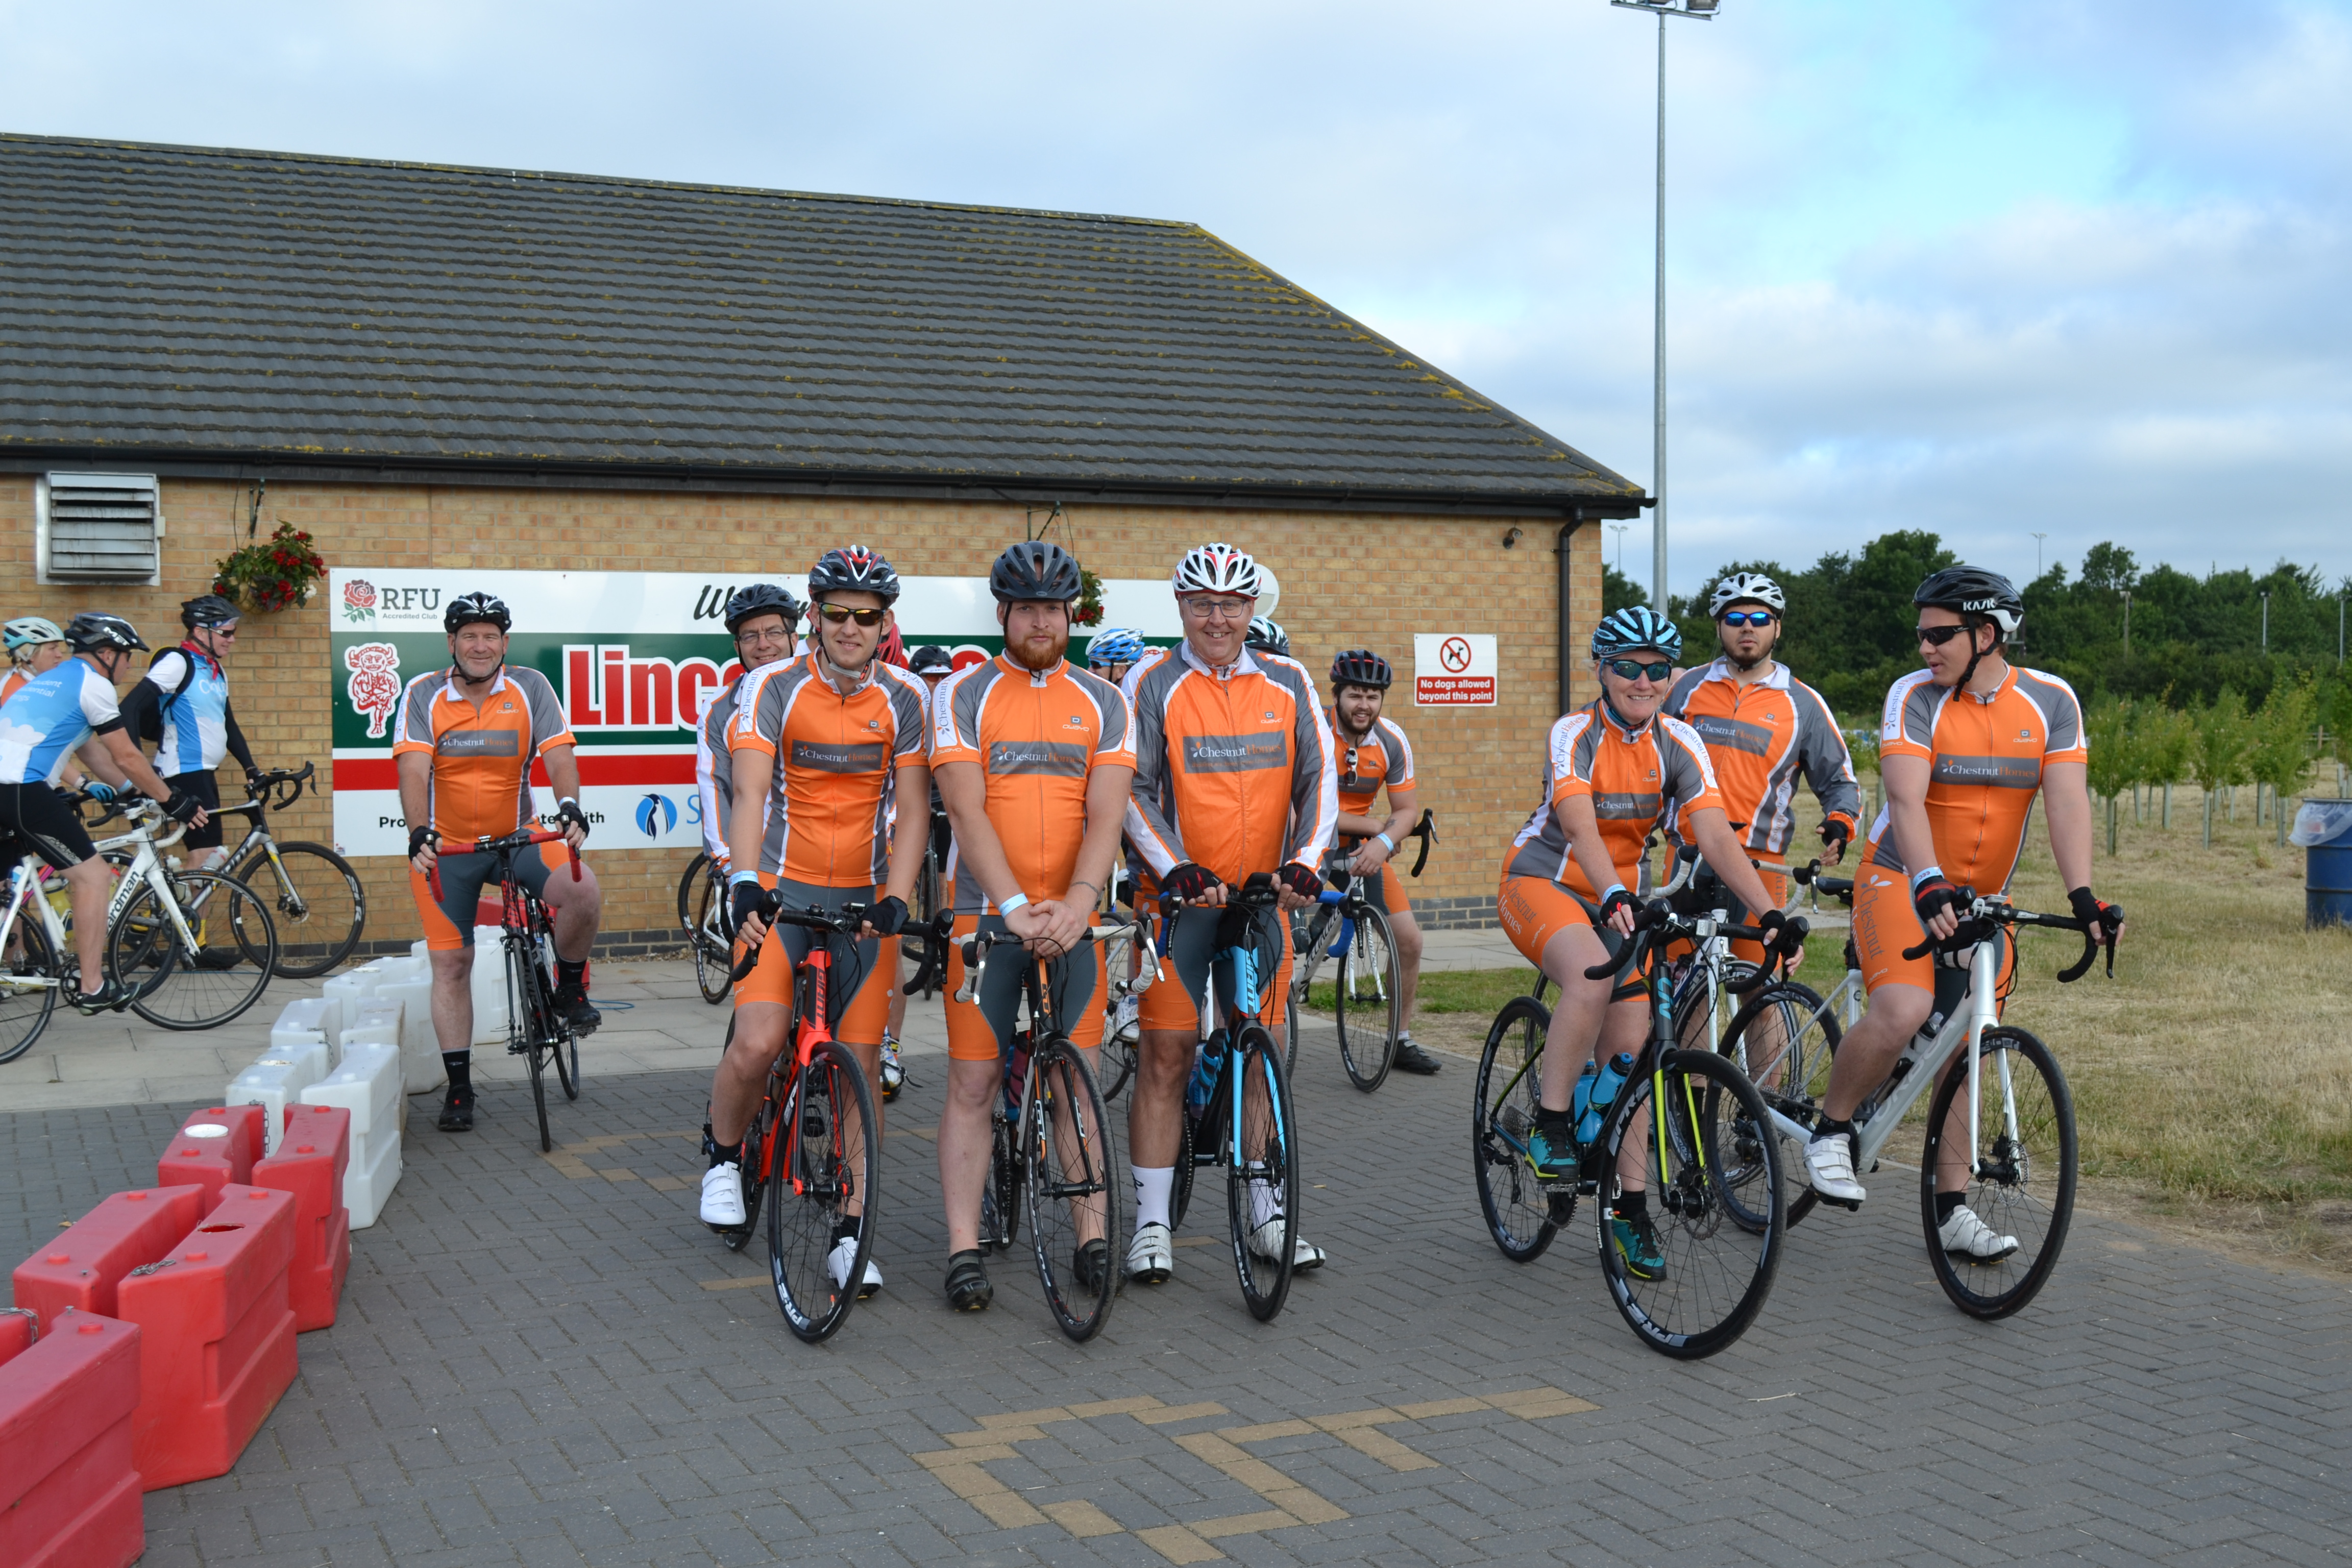 Housebuilders take to the road for charity cycle ride